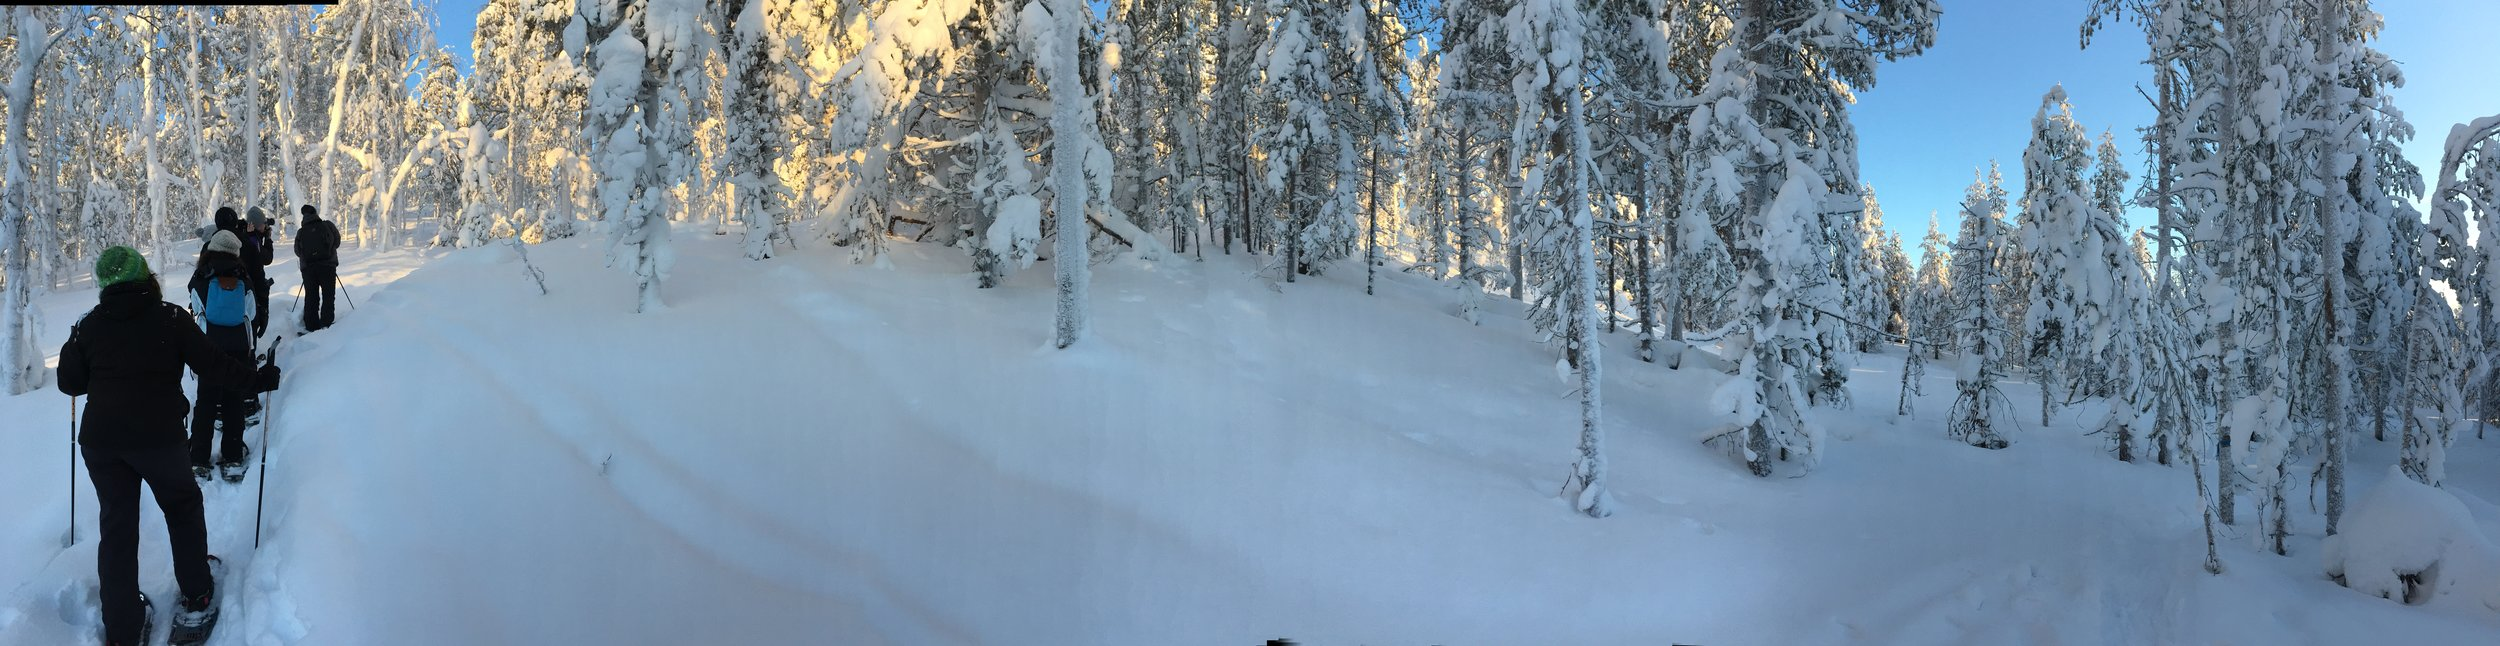 A day off skiing to go snow shoeing